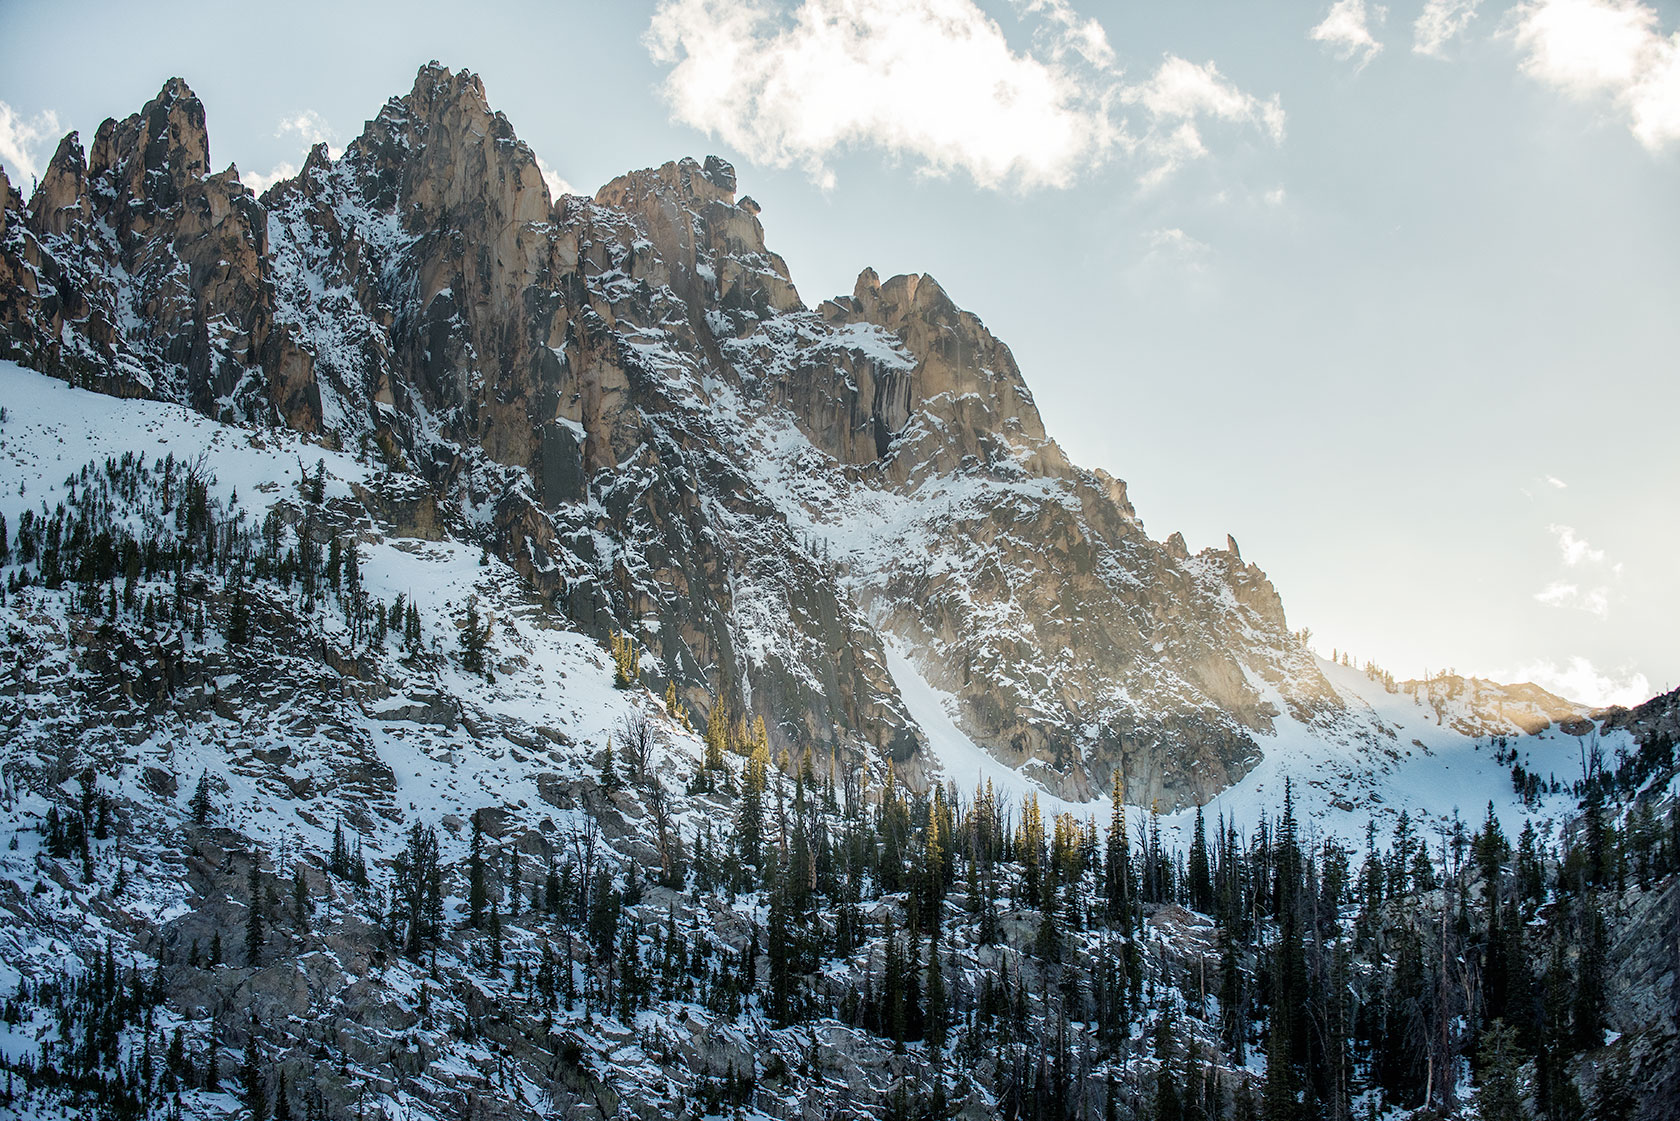 austin-trigg-patagonia-sawtooth-hiking-advenure-wilderness-forest-idaho-outside-lifestyle-day-fall-weather-mountains-bench-lakes-sunset-peaks.jpg